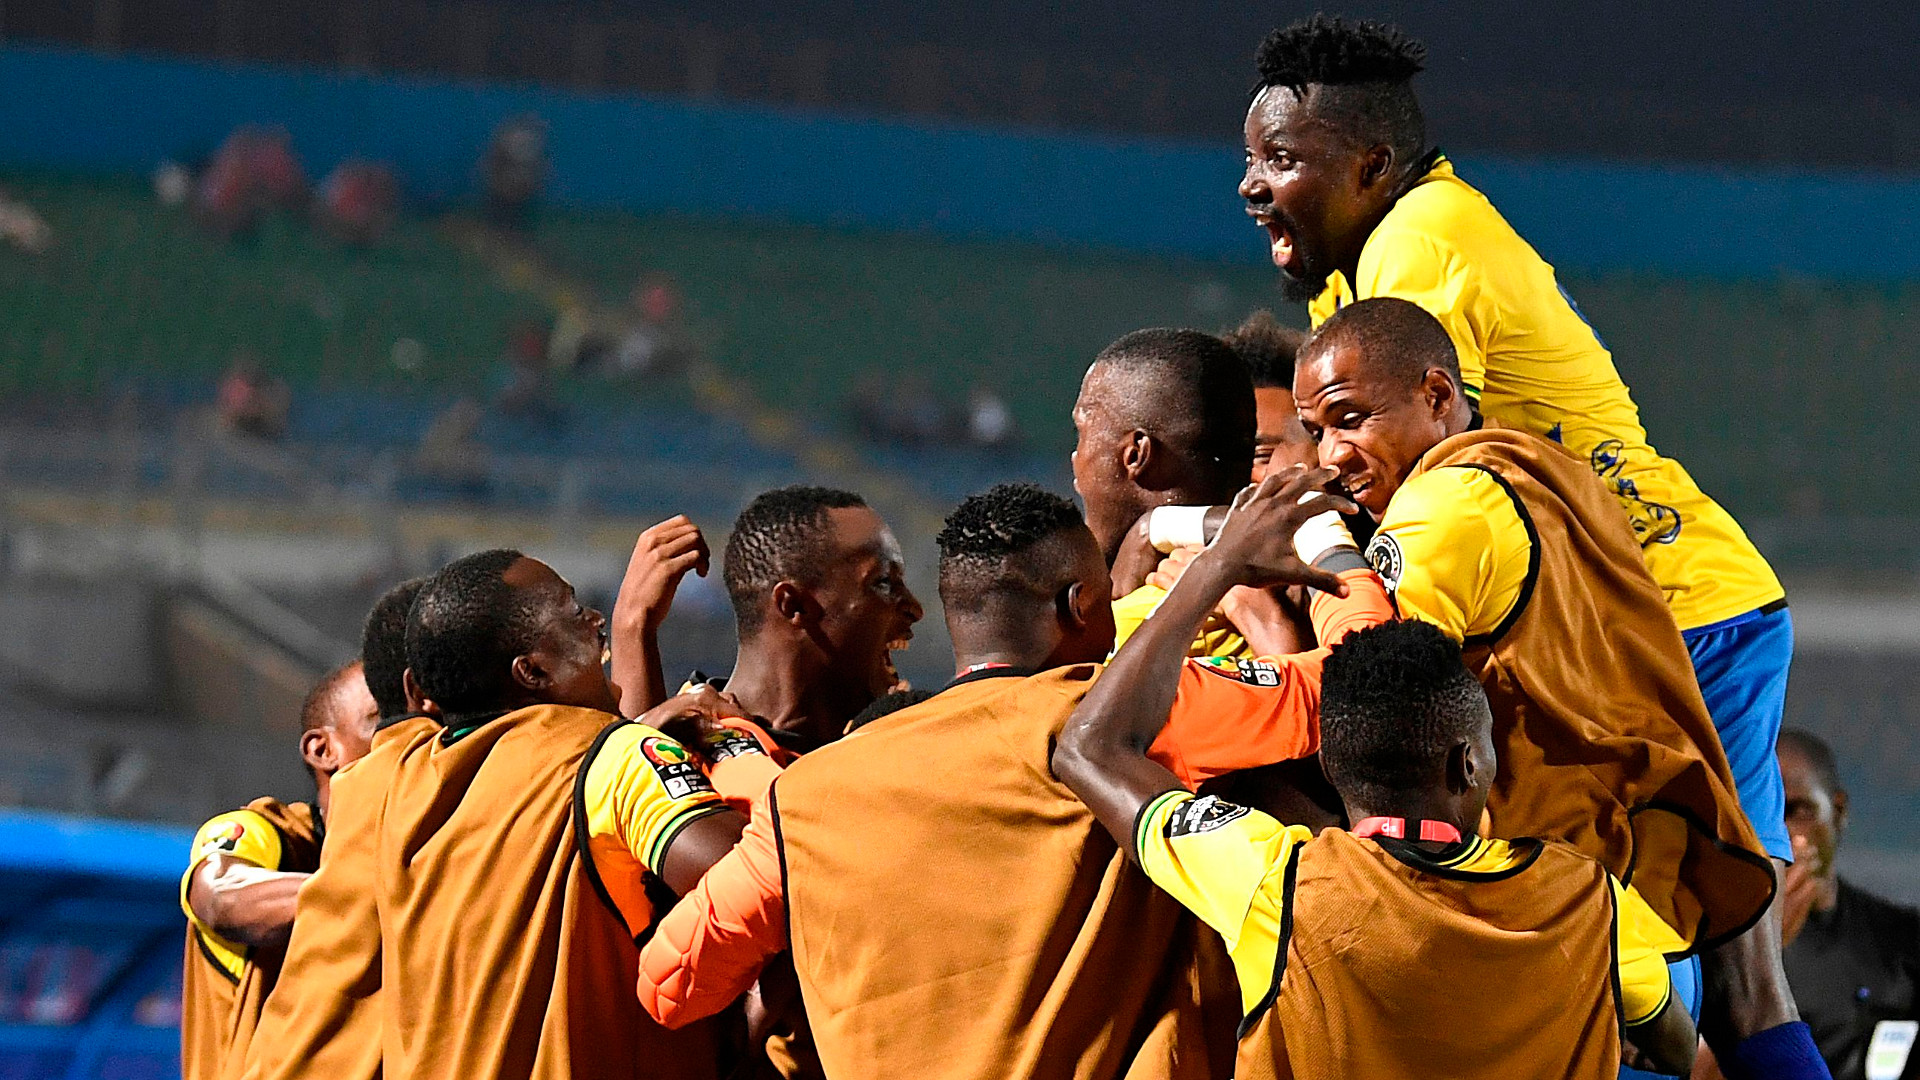 Afcon 2021 Qualifiers: Abubakar seals win for Tanzania against Equatorial Guinea